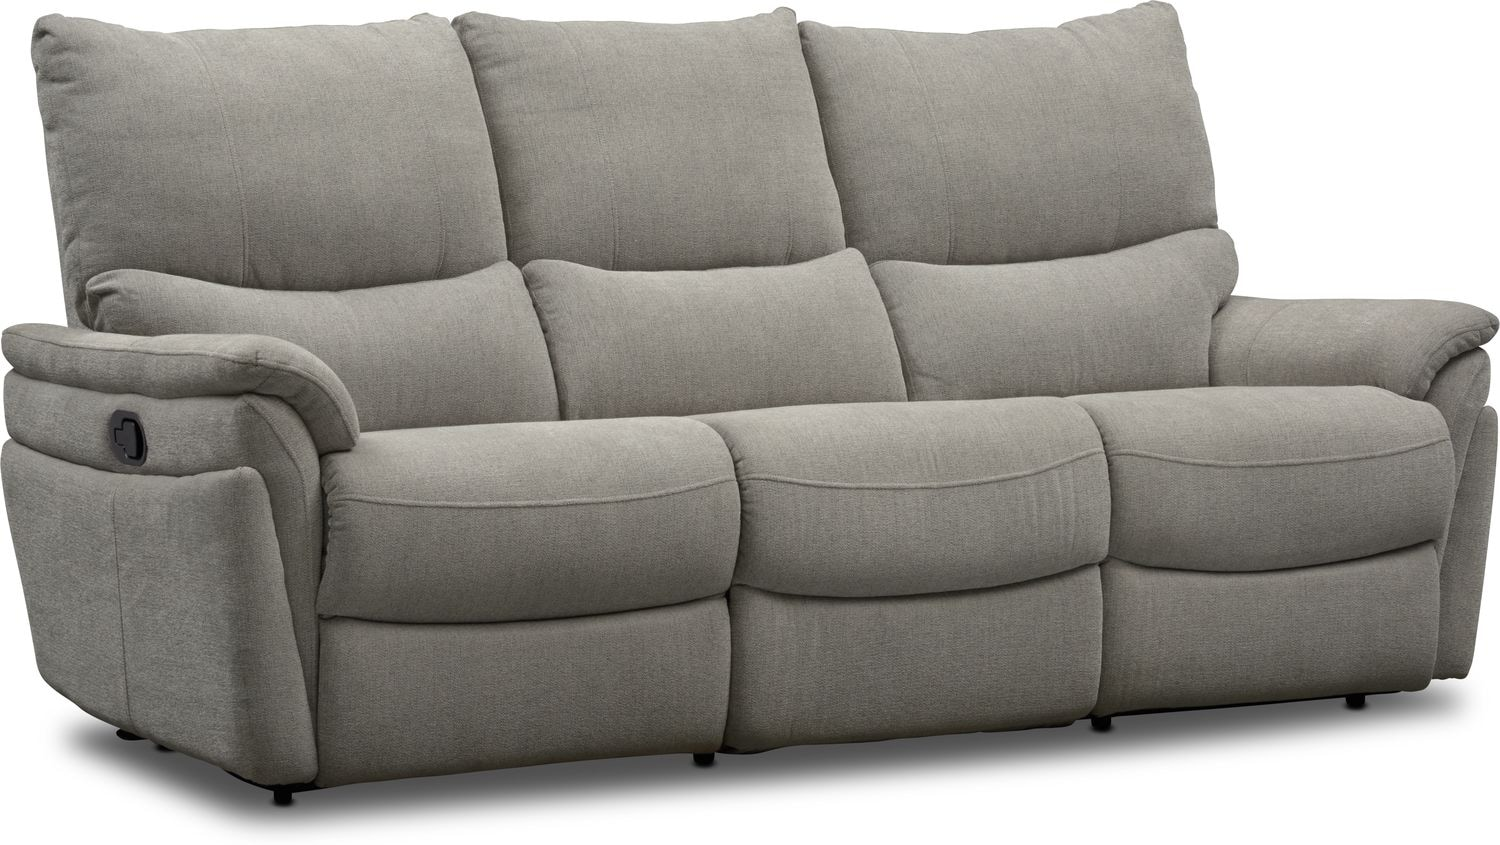 Living Room Furniture - Maddox Manual Reclining 2-Piece Sofa